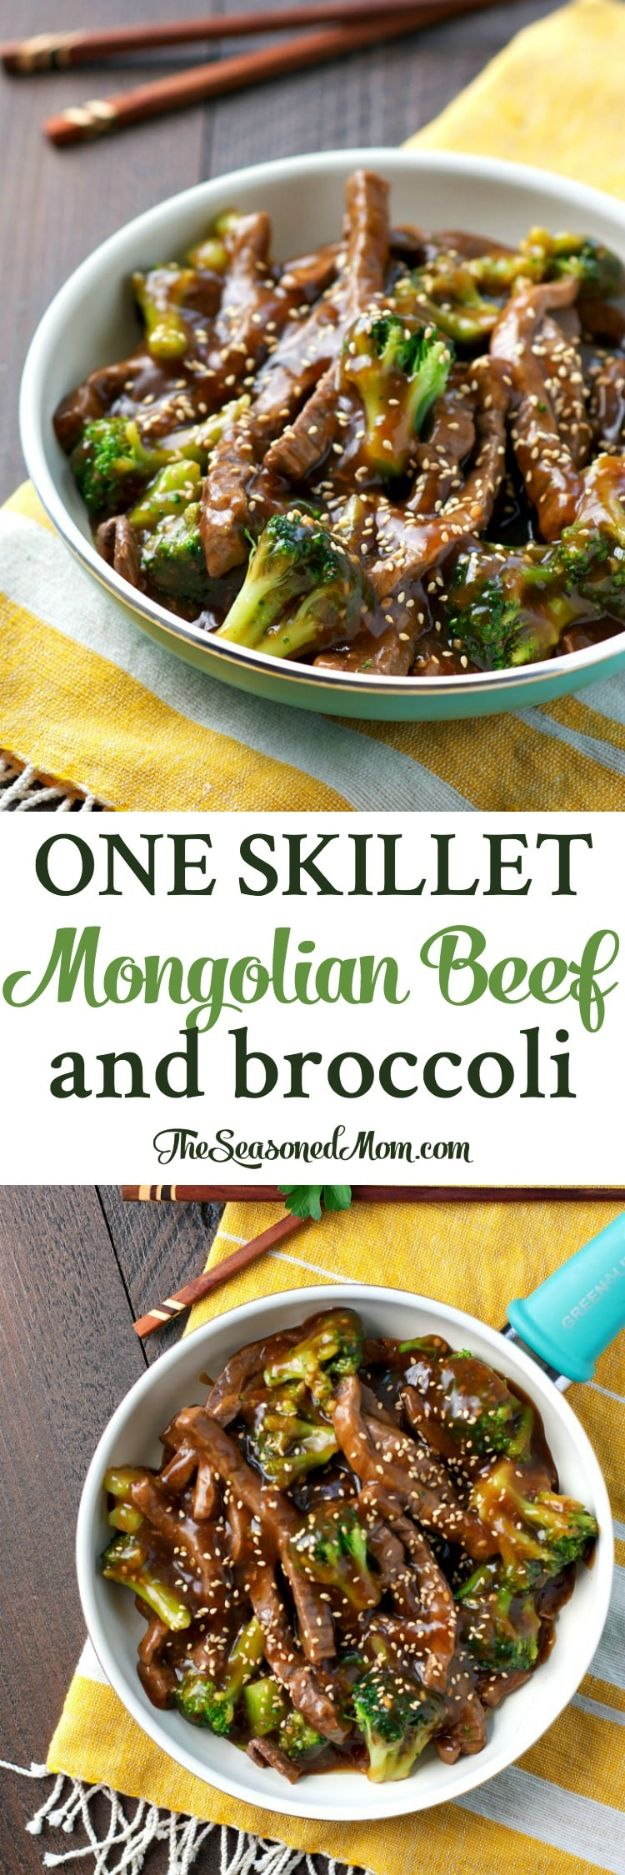 Easy Dinner Recipes - One Skillet Mongolian Beef Broccoli - Quick and Simple Dinner Recipe Ideas for Weeknight and Last Minute Supper - Chicken, Ground Beef, Fish, Pasta, Healthy Salads, Low Fat and Vegetarian Dishes #easyrecipes #dinnerideas #recipes